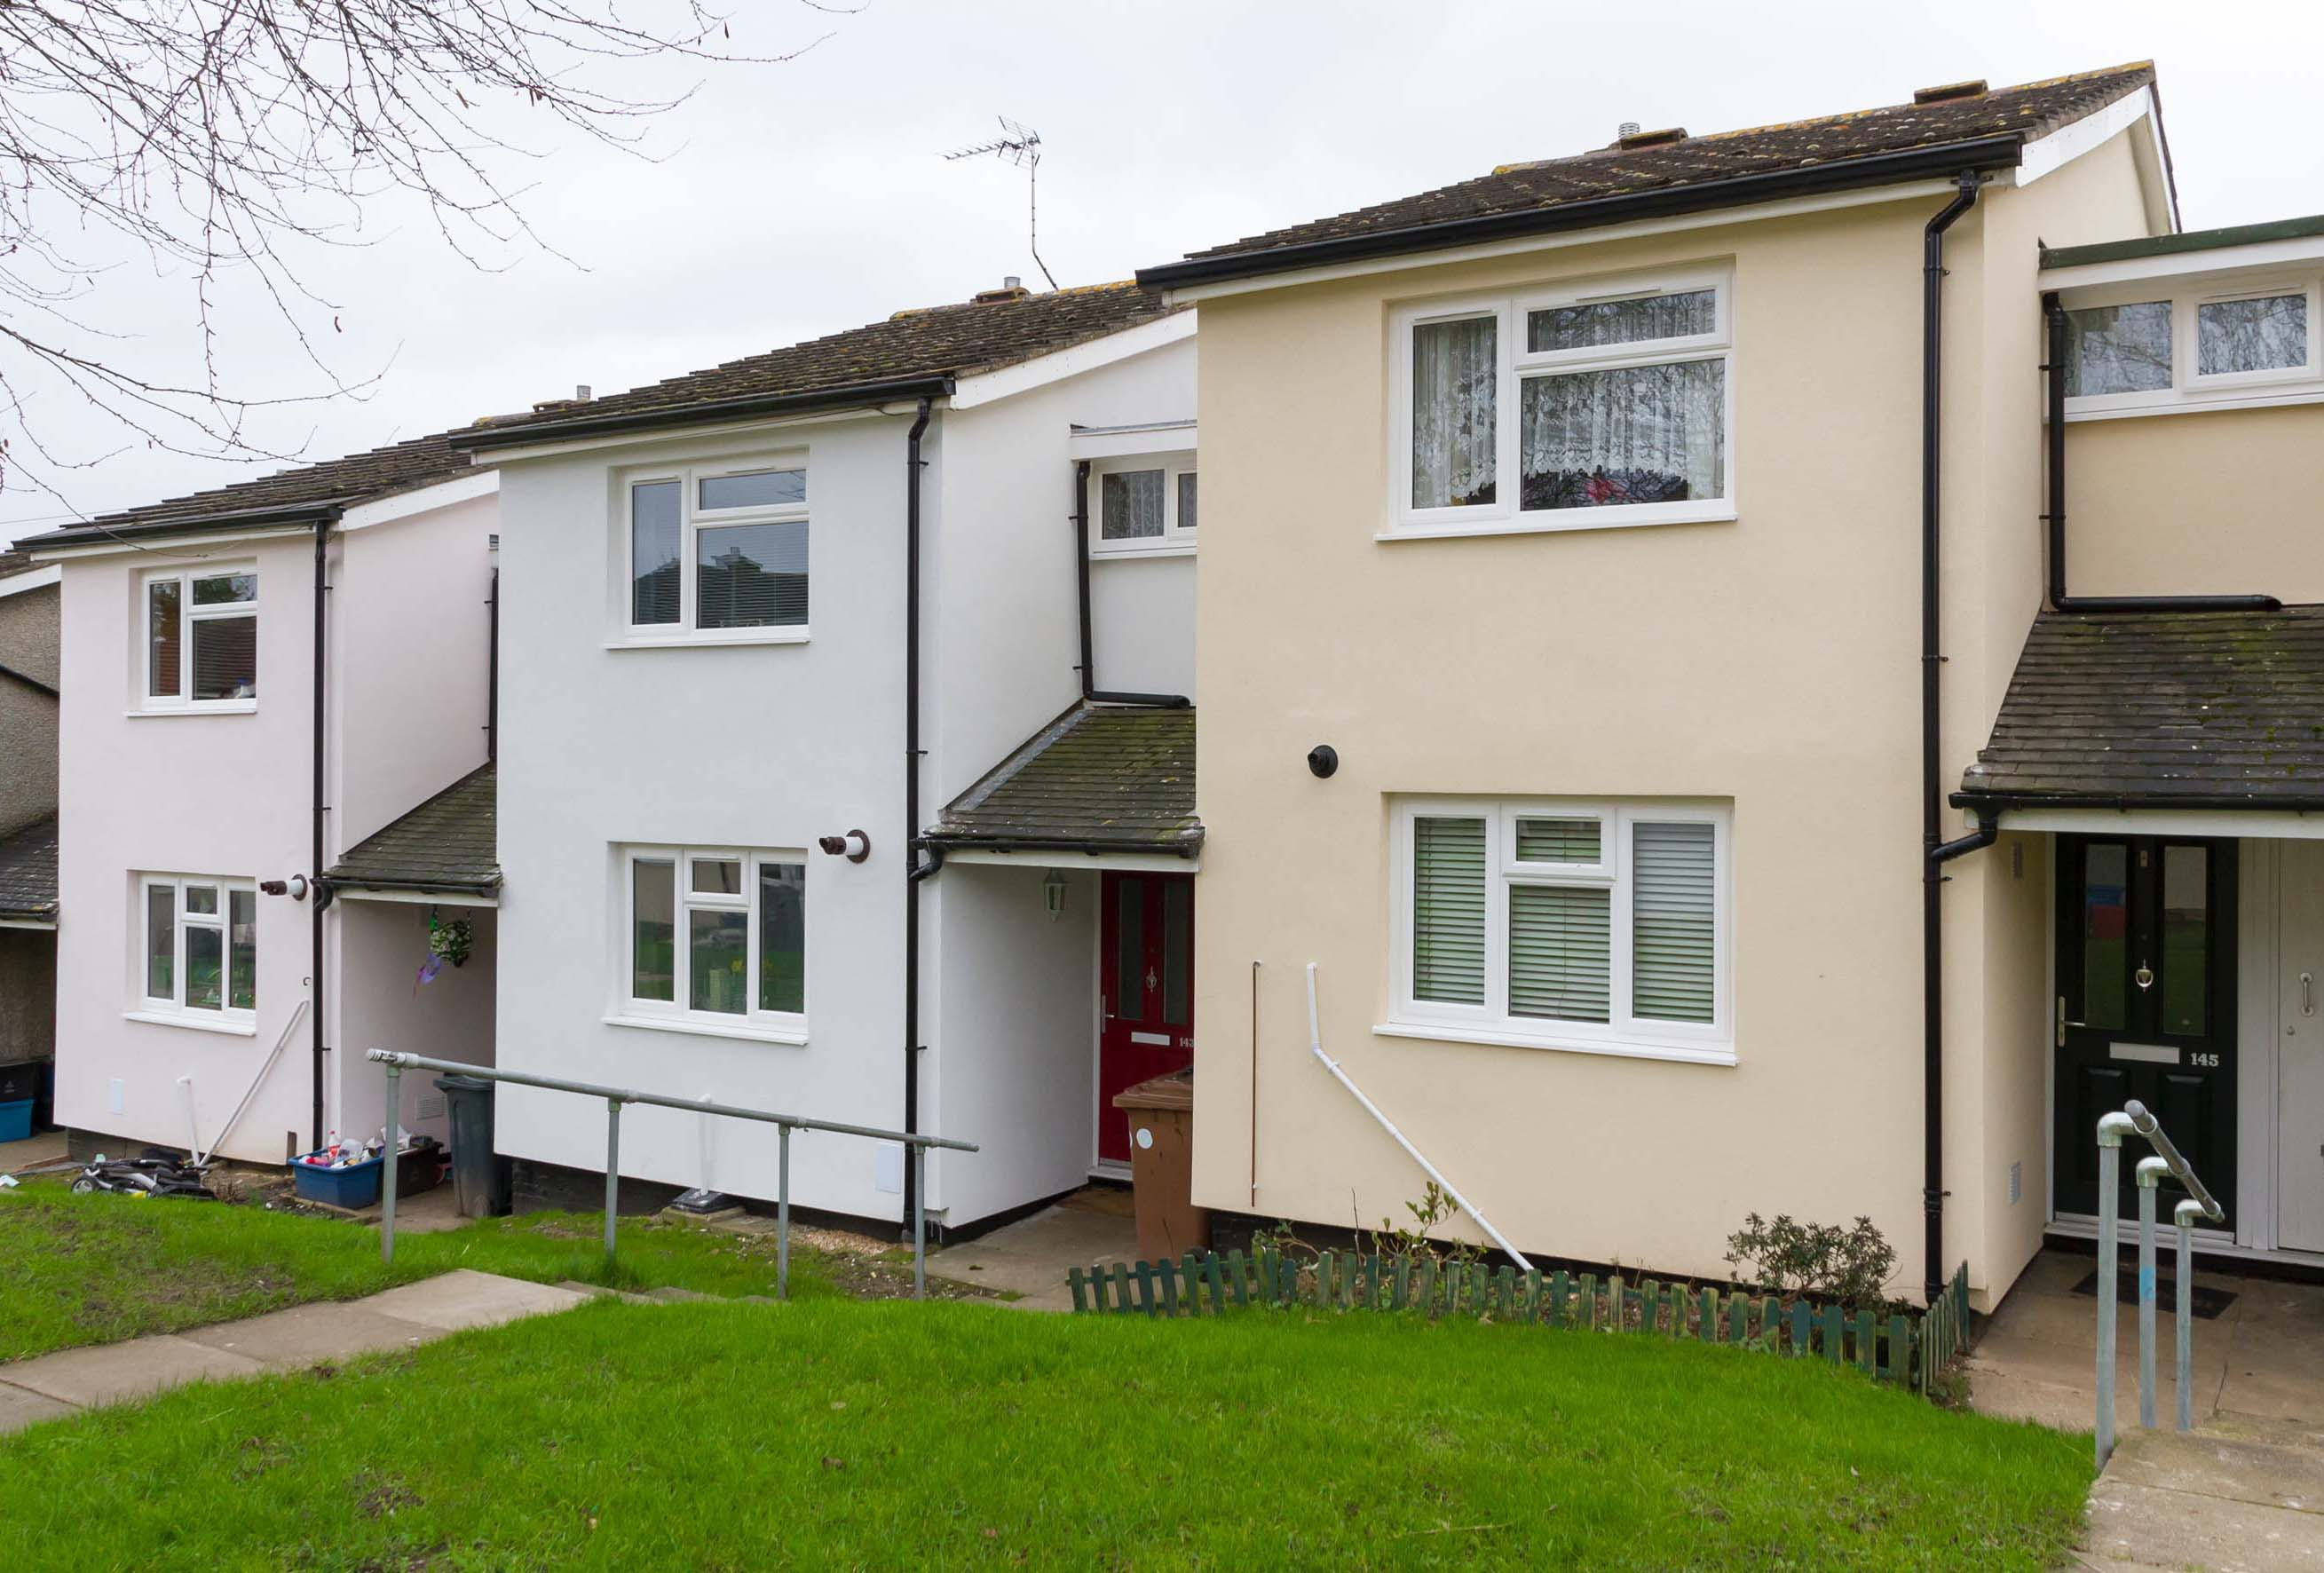 Stevenage Homes Brought Up to Spec With Saint-Gobain Weber External Wall Insulation